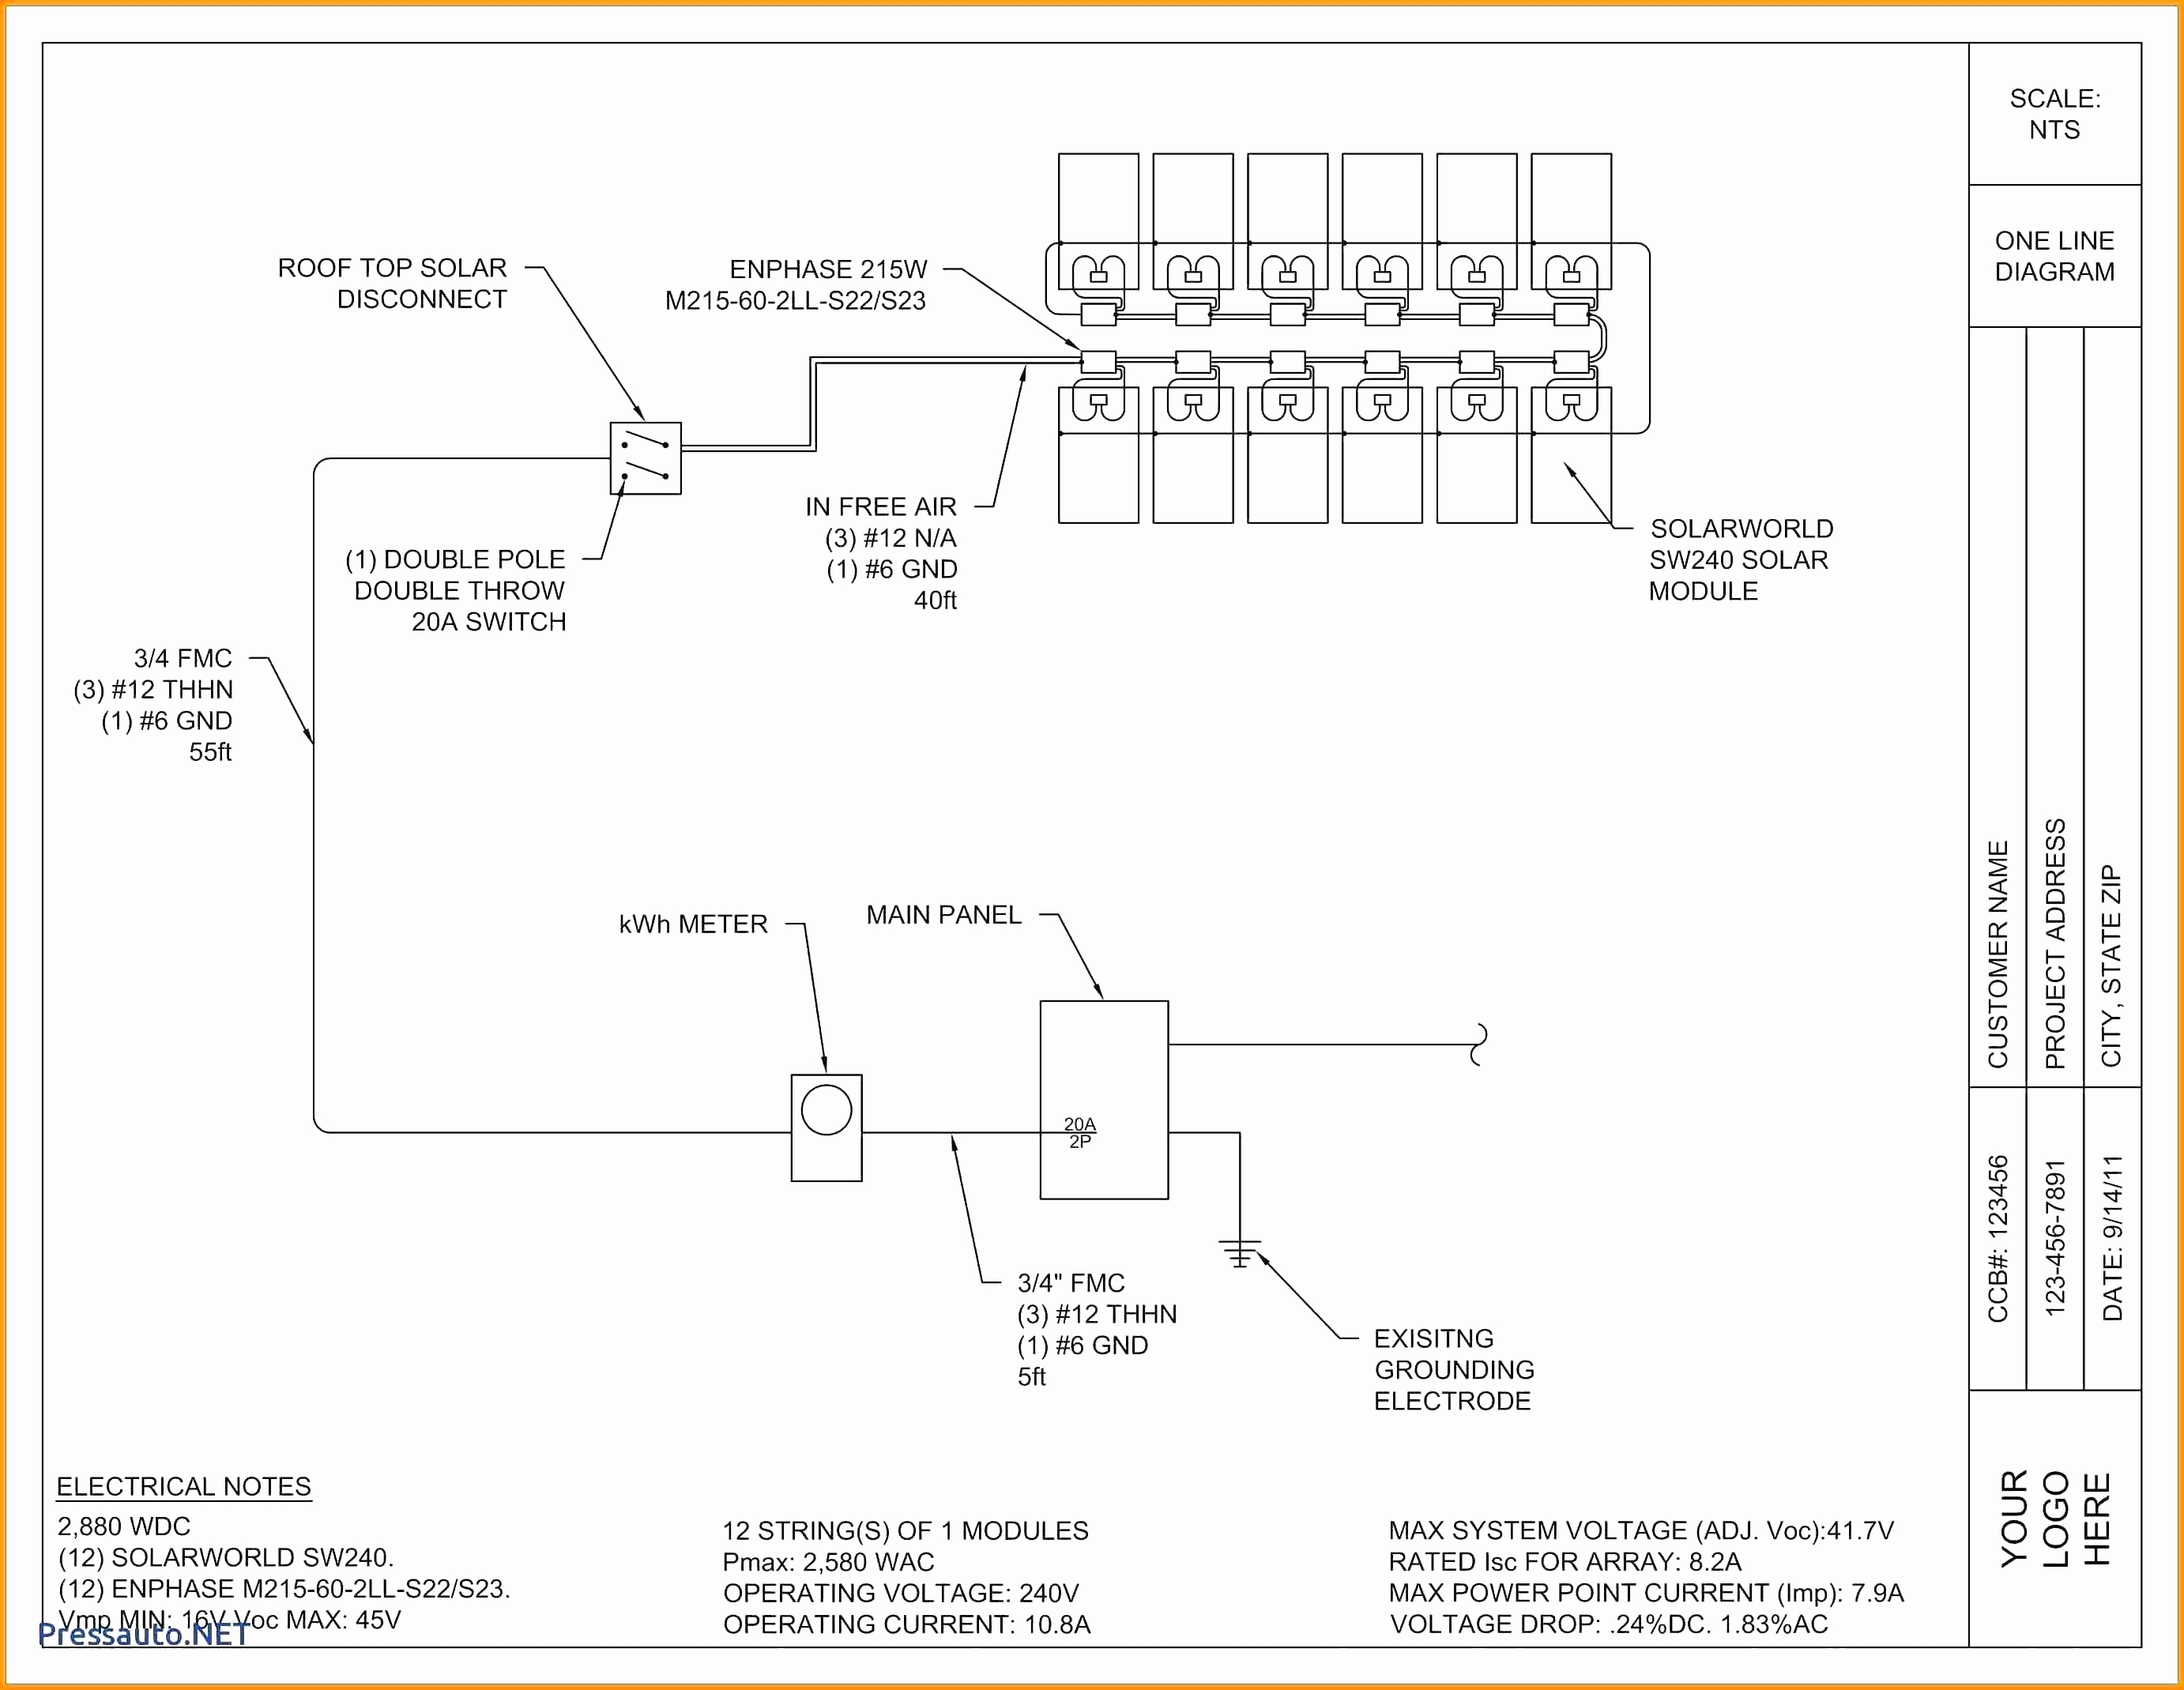 honeywell th8320r1003 wiring diagram Download-Wiring Diagram Pics Detail Name honeywell th8320r1003 wiring 8-l